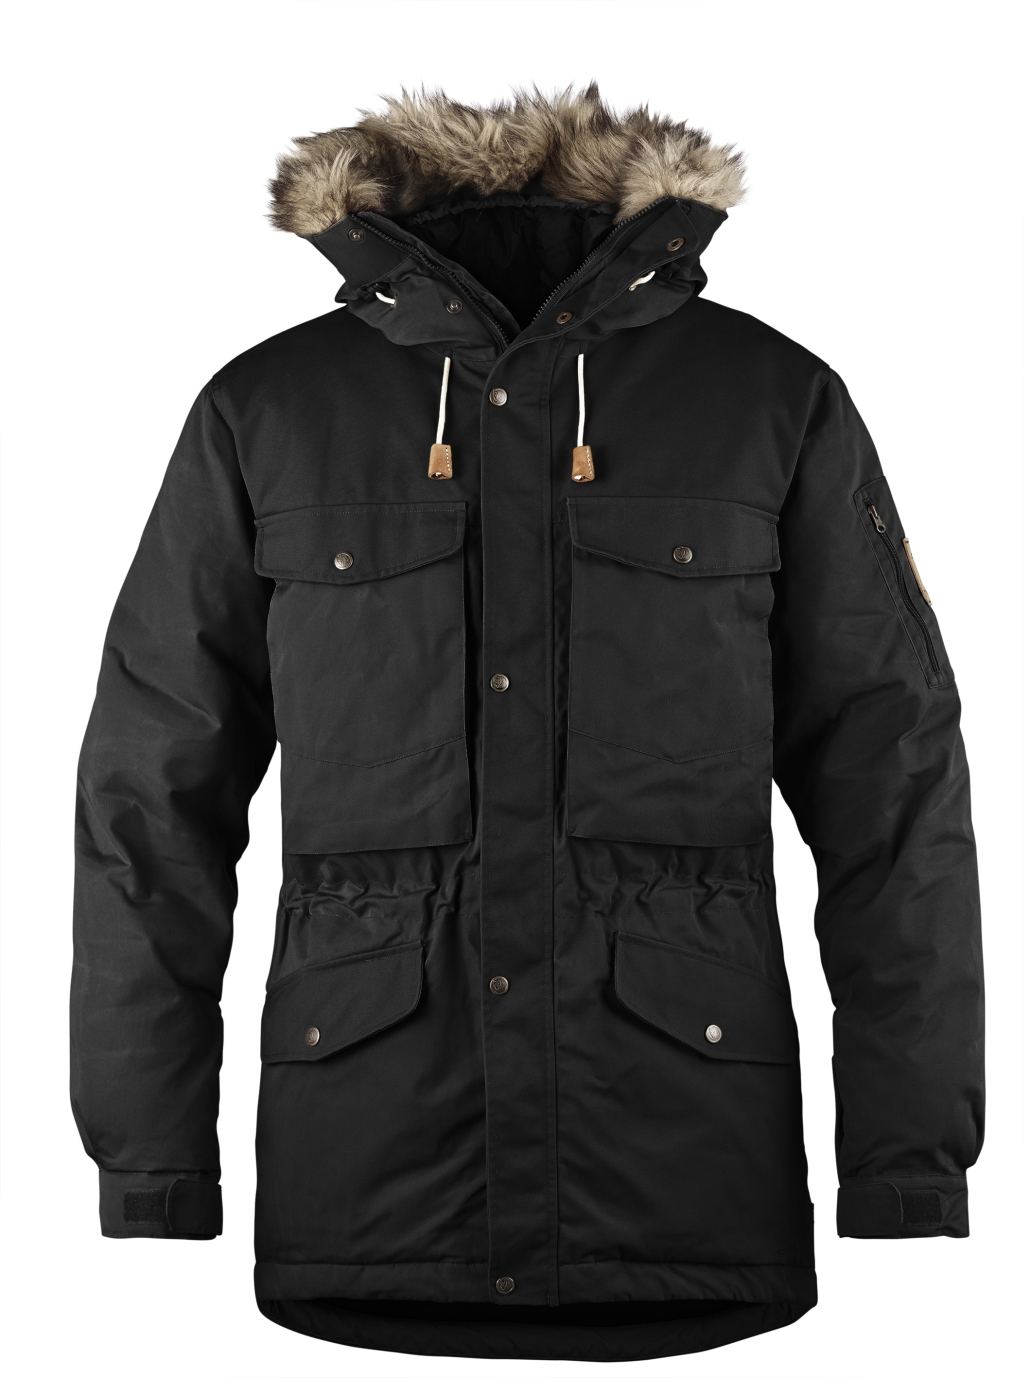 FjallRaven Singi Down Jacket Black-30